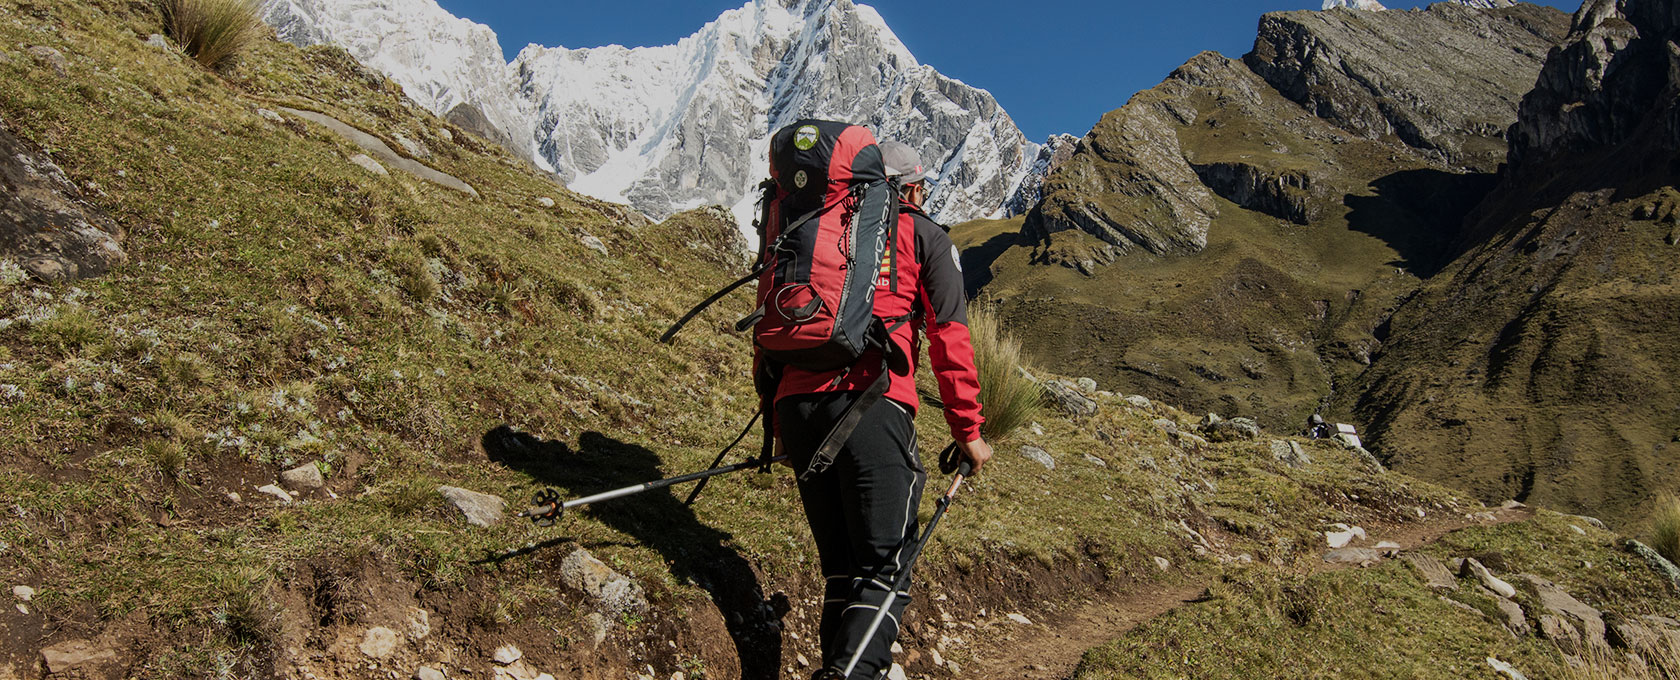 Awesome Cordillera Blanca - Outdoor Adventures in to the National Park Huascaran